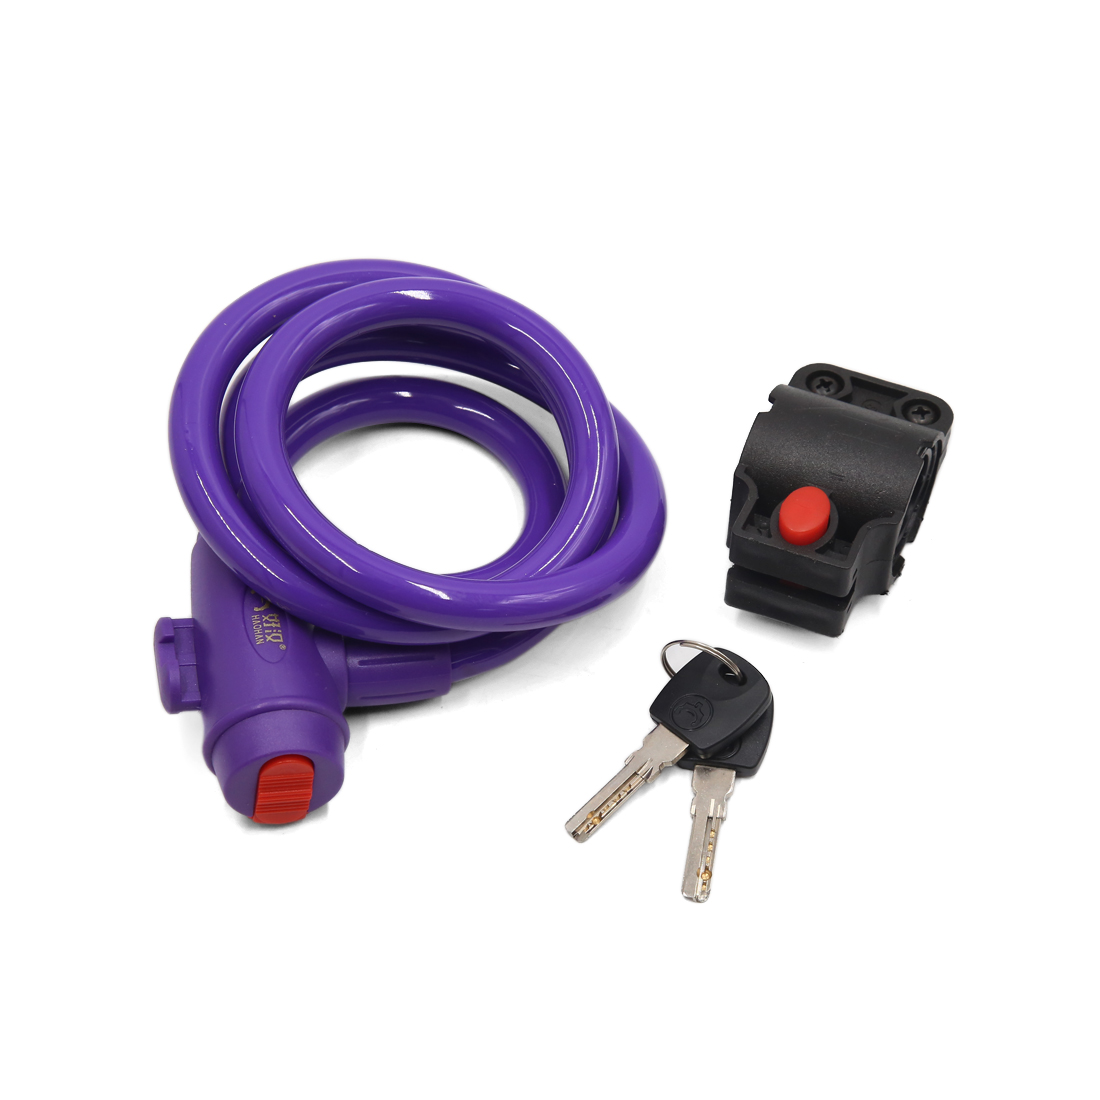 Universal Bike Bicycle Purple Anti Thief Safety Cable Wire Lock w 2 Keys